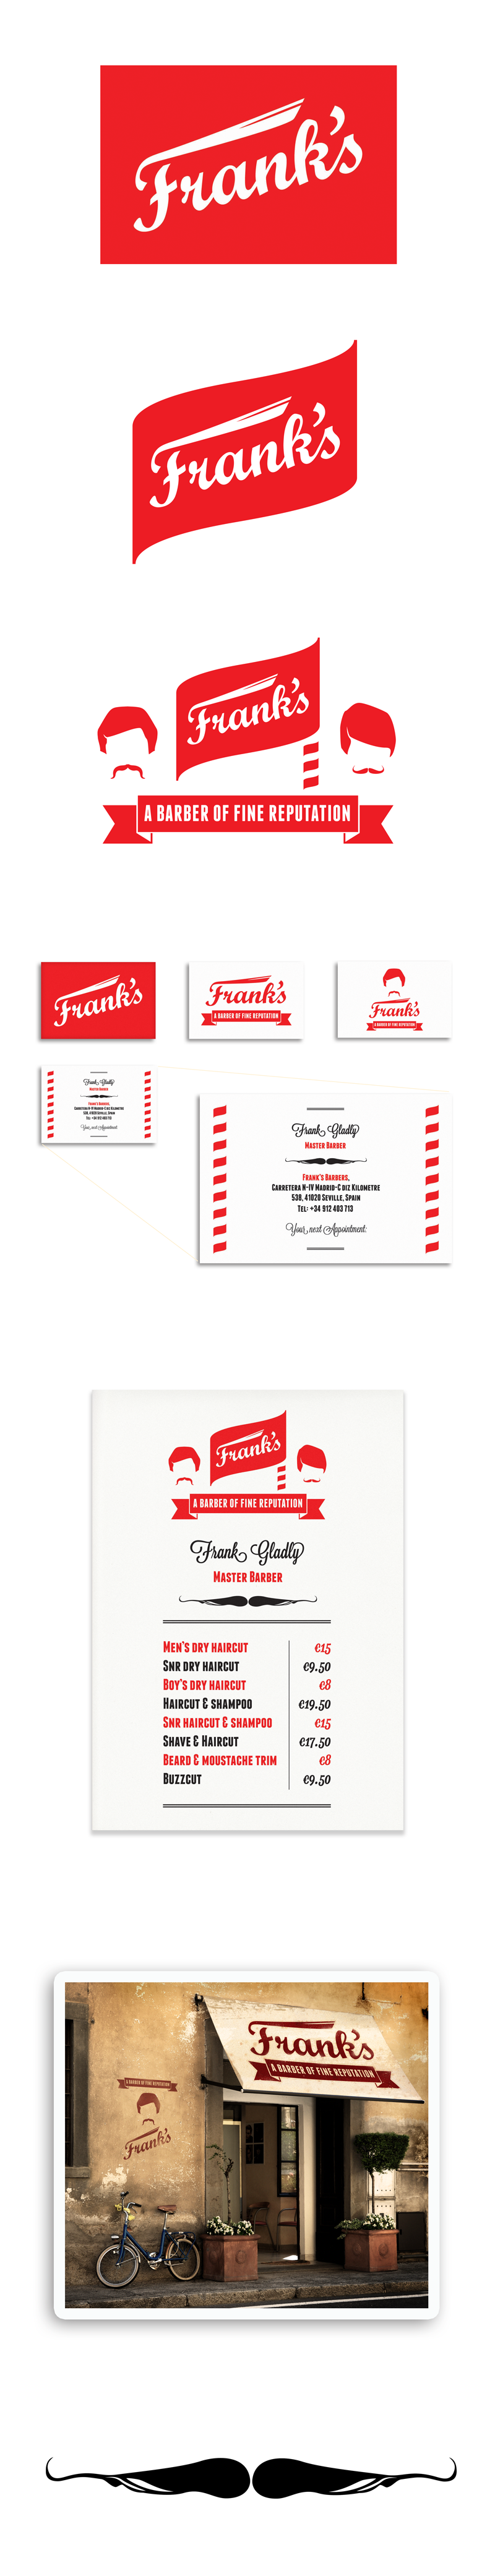 Franks barber shop seville by theory unit graphic design logo franks barber shop seville by theory unit graphic design logo business card price reheart Gallery